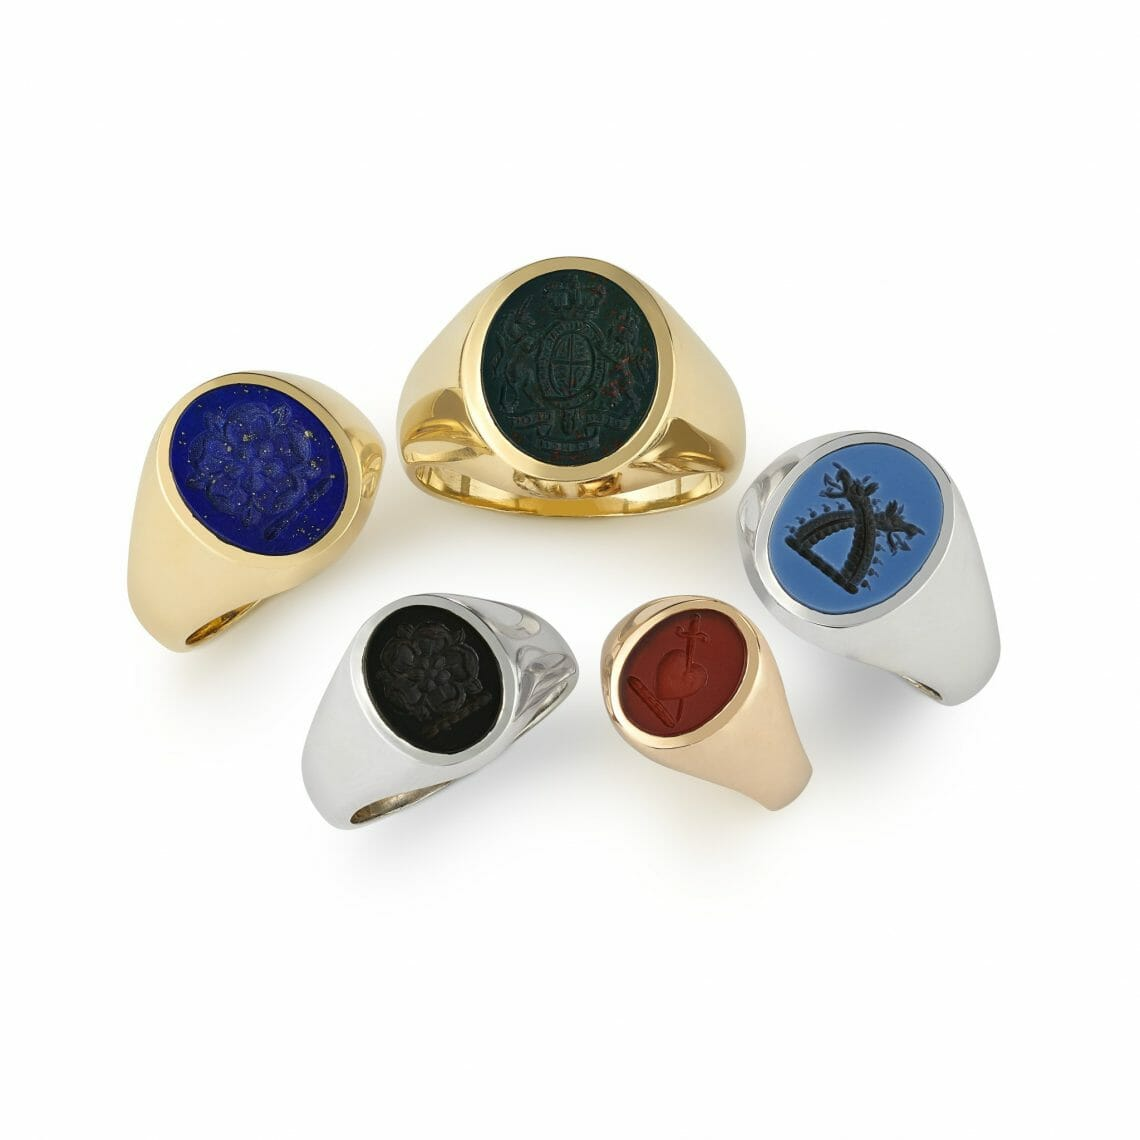 signet rings hancocks Modern Resurgence of the Traditional Signet Ring - EAT LOVE SAVOR International luxury lifestyle magazine, bookazines & luxury community